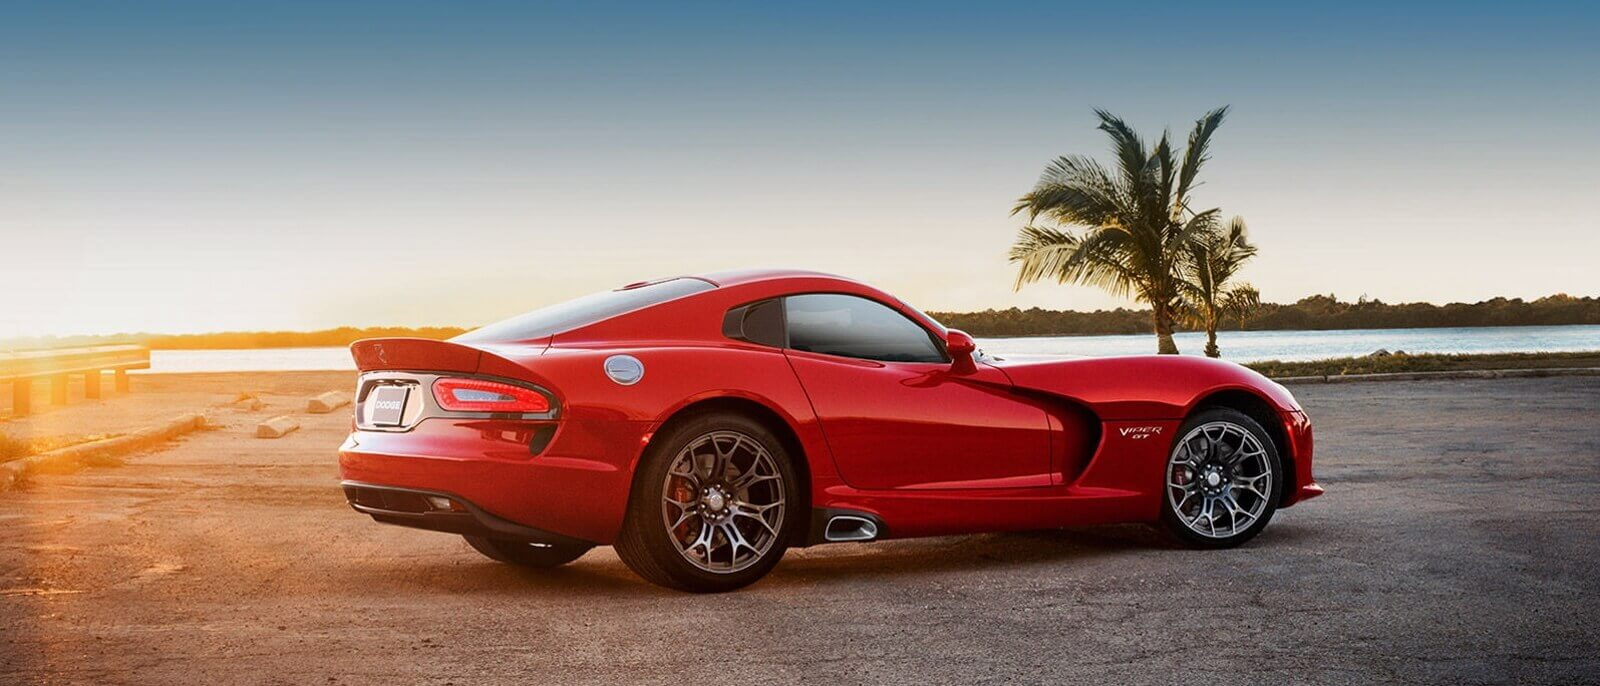 Dodge Viper Used >> Peters Chevrolet Chrysler Jeep Dodge Ram Longview Tx | Upcomingcarshq.com